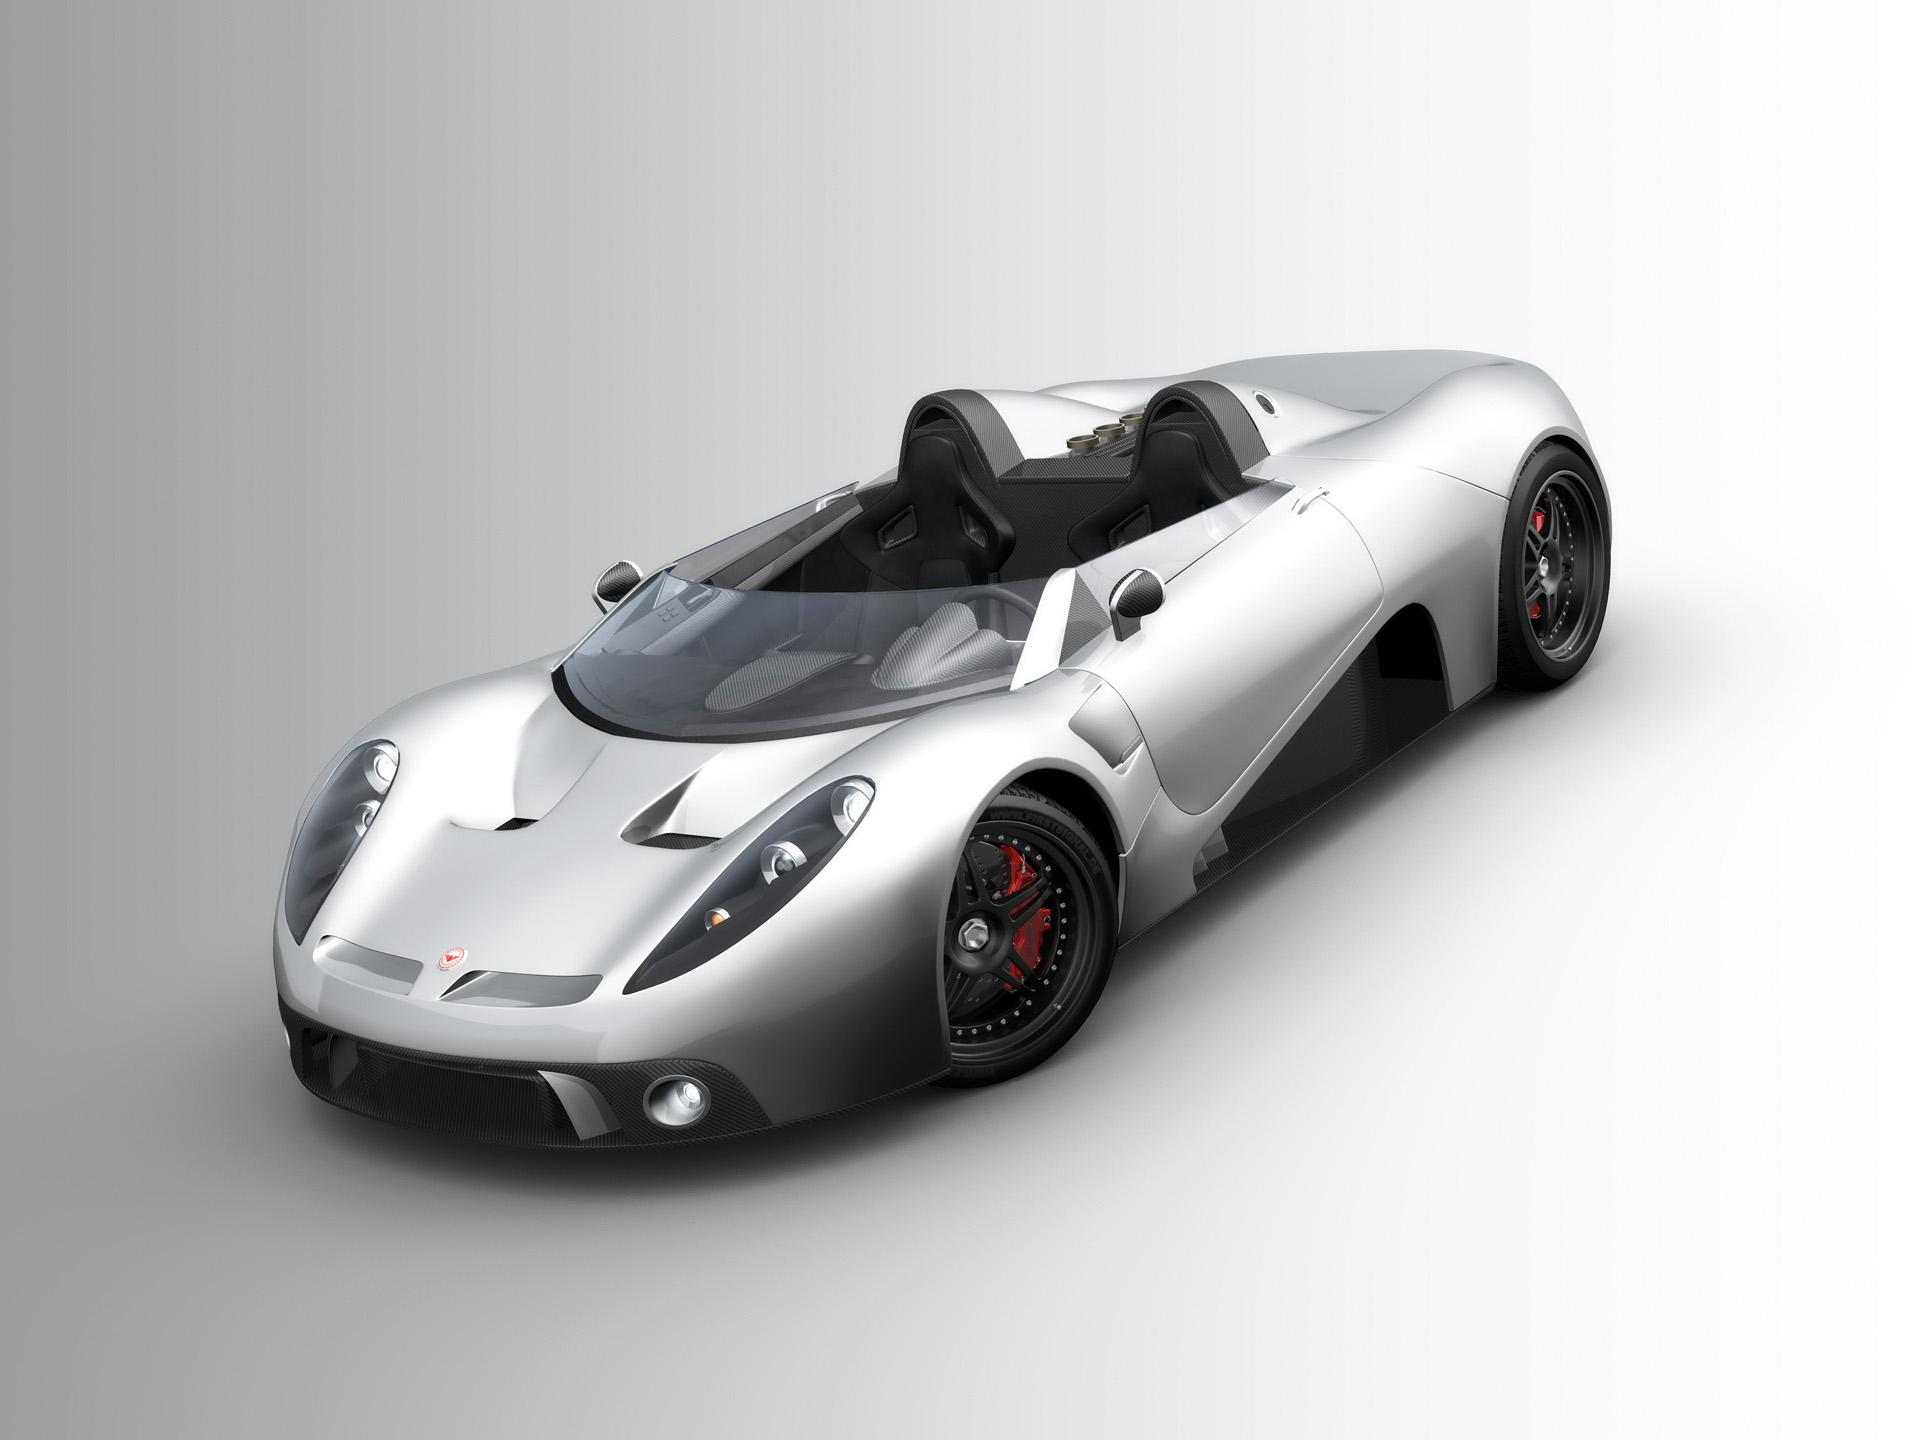 2008 Scuderia Bizzarrini p538 Barchetta Prototype Image